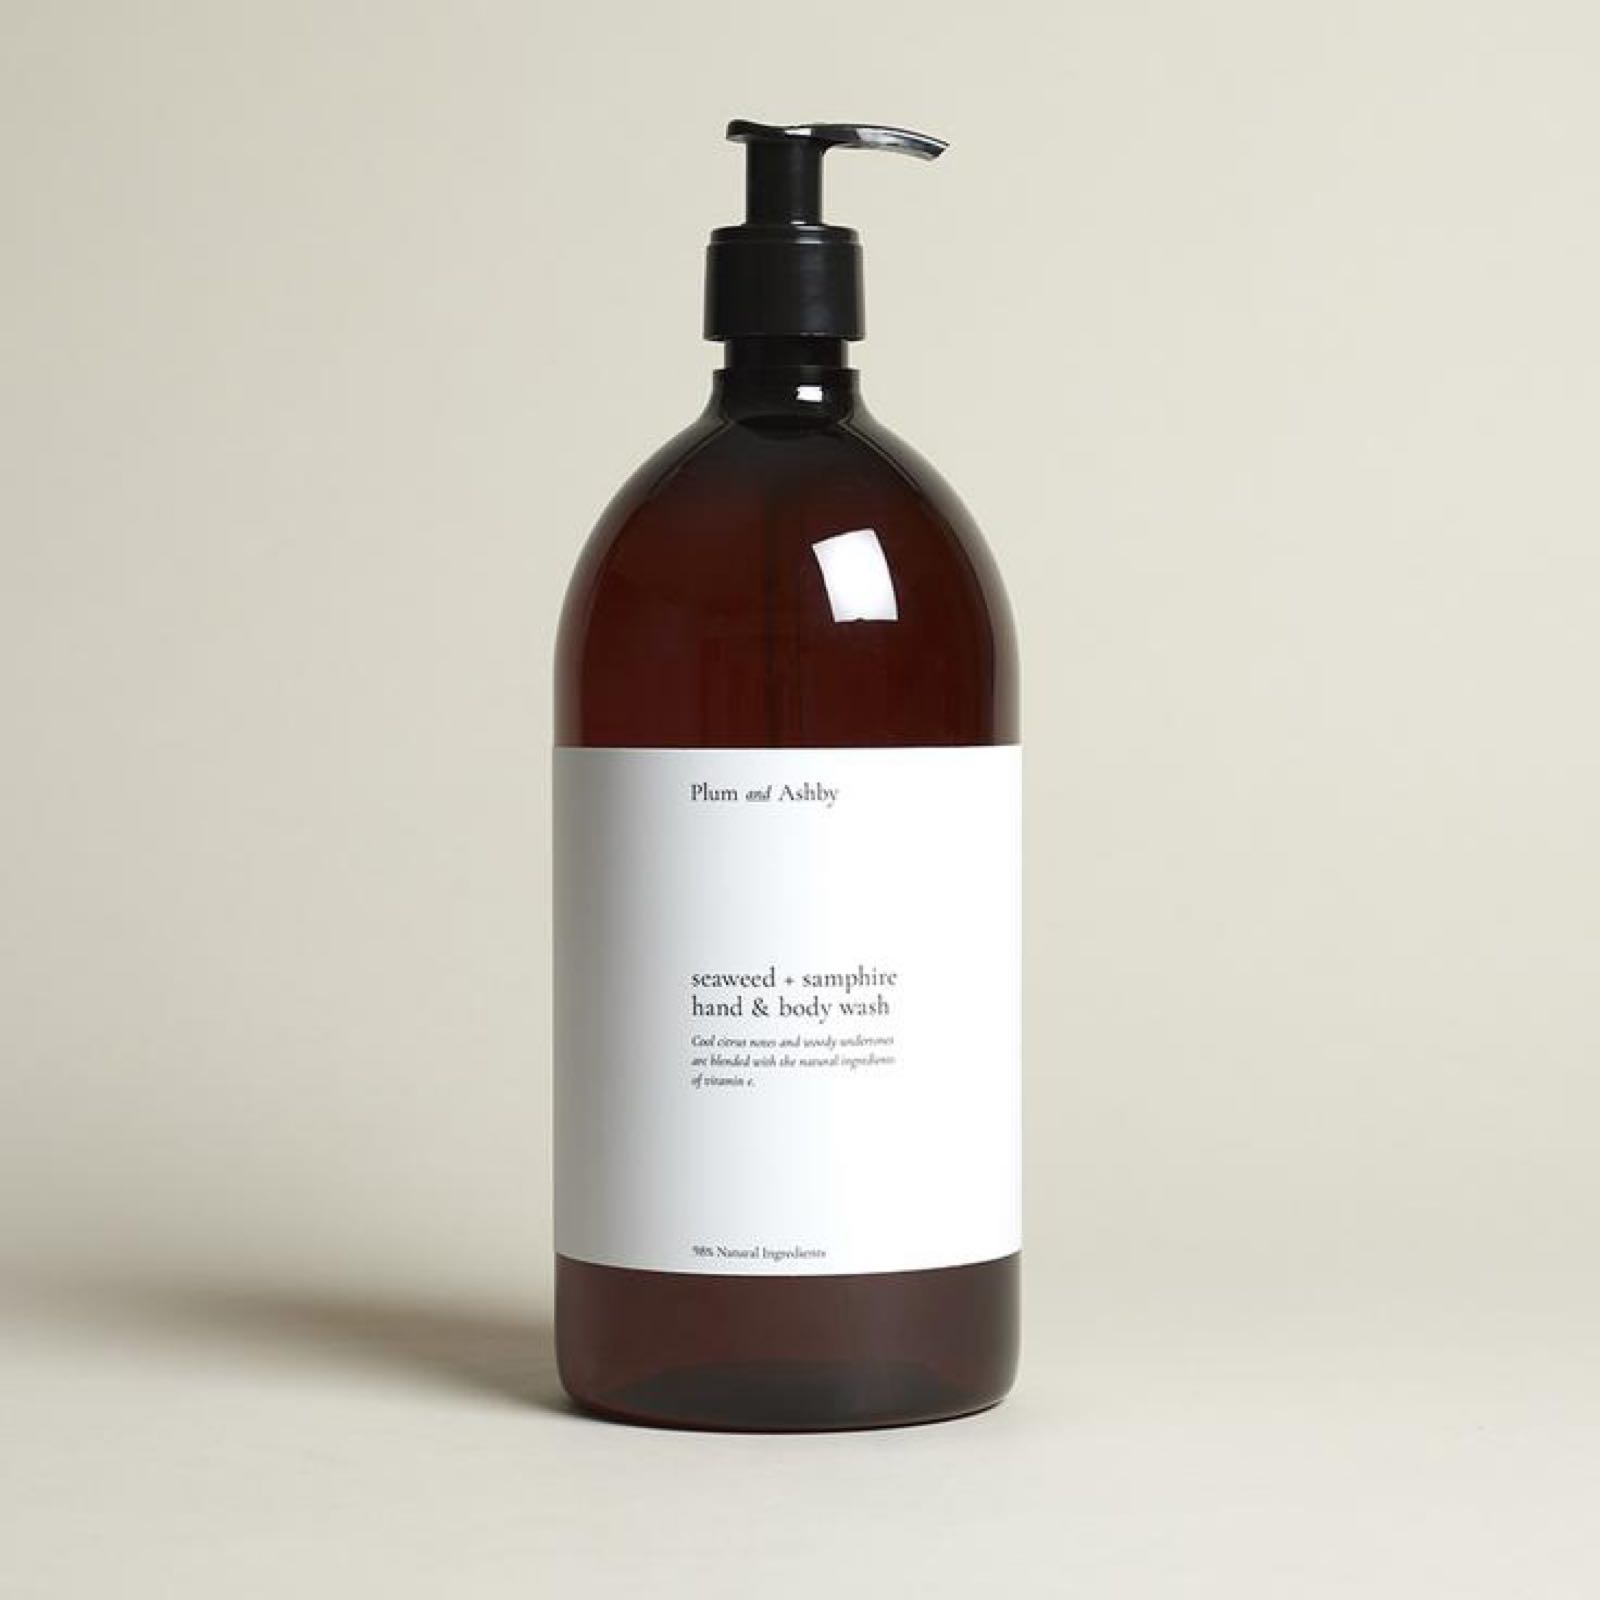 Plum & Ashby Seaweed and Samphire hand and body wash 1 litre refill